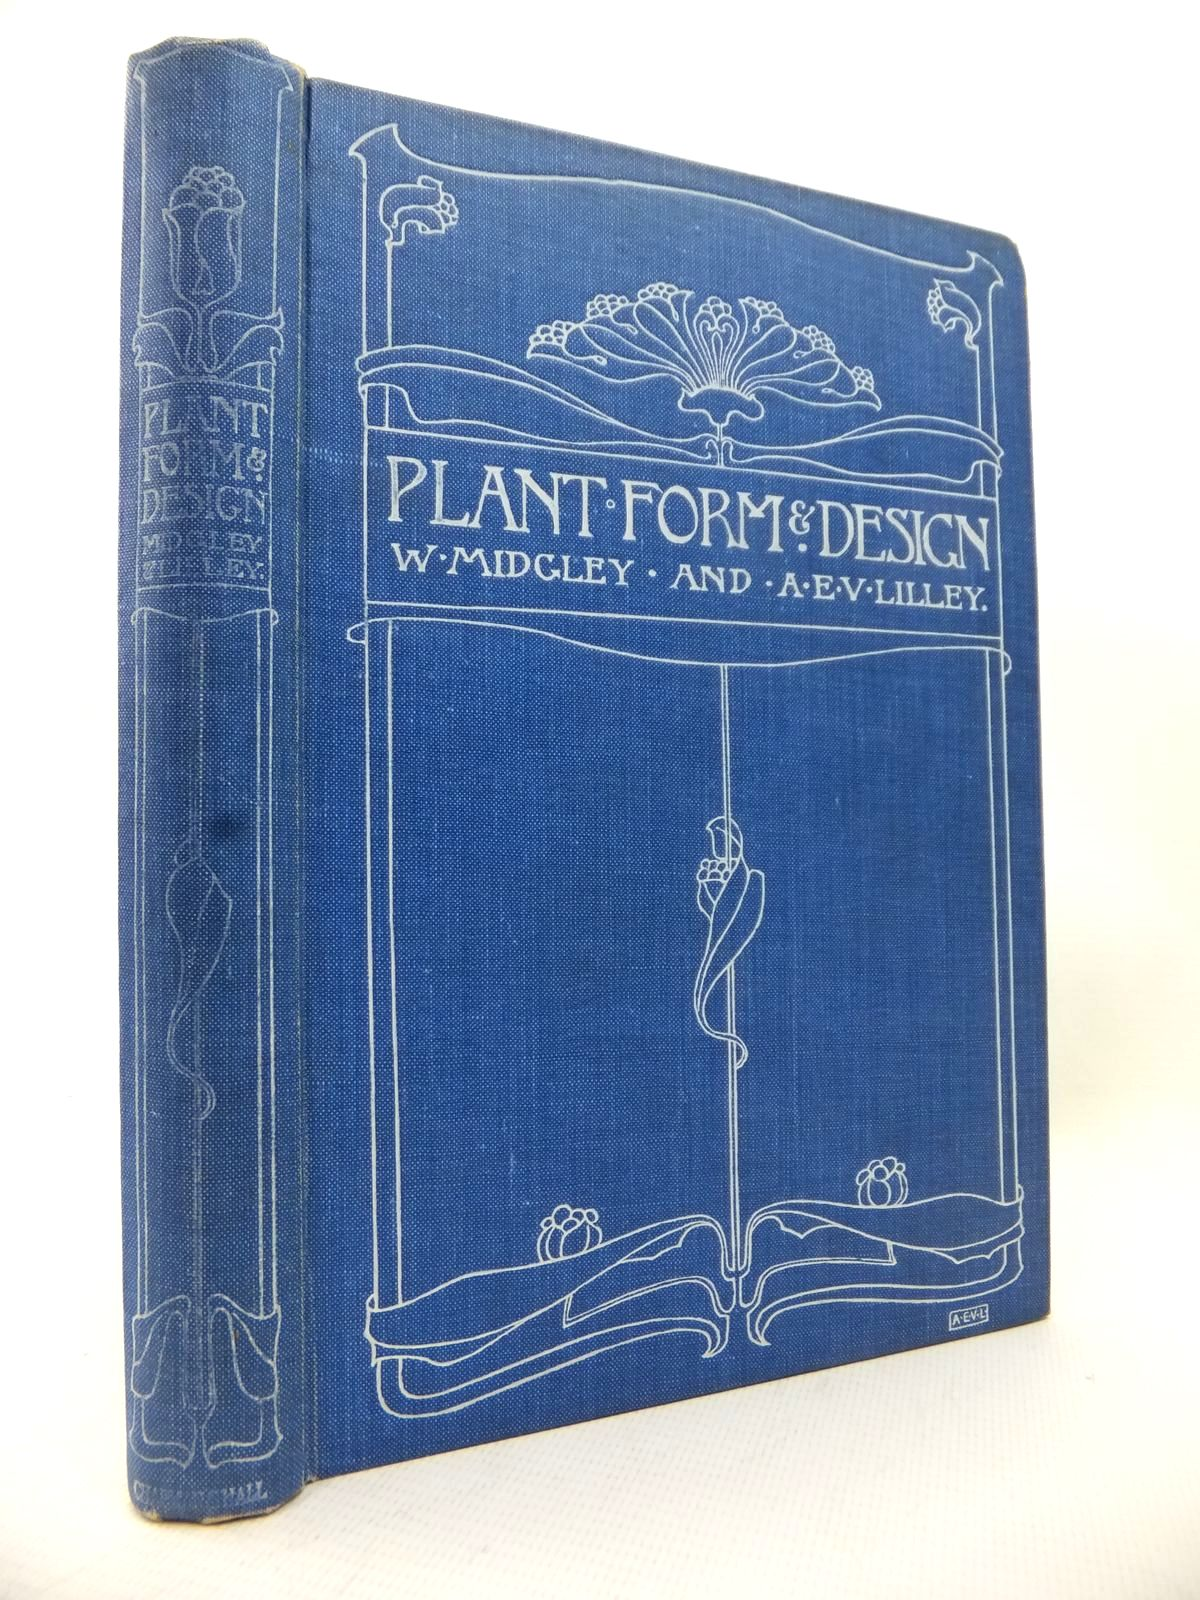 Photo of A BOOK OF STUDIES IN PLANT FORM WITH SOME SUGGESTIONS FOR THEIR APPLICATION TO DESIGN written by Lilley, A.E.V.<br />Midgley, W. published by Chapman & Hall, Charles Scribner's Sons (STOCK CODE: 1813956)  for sale by Stella & Rose's Books